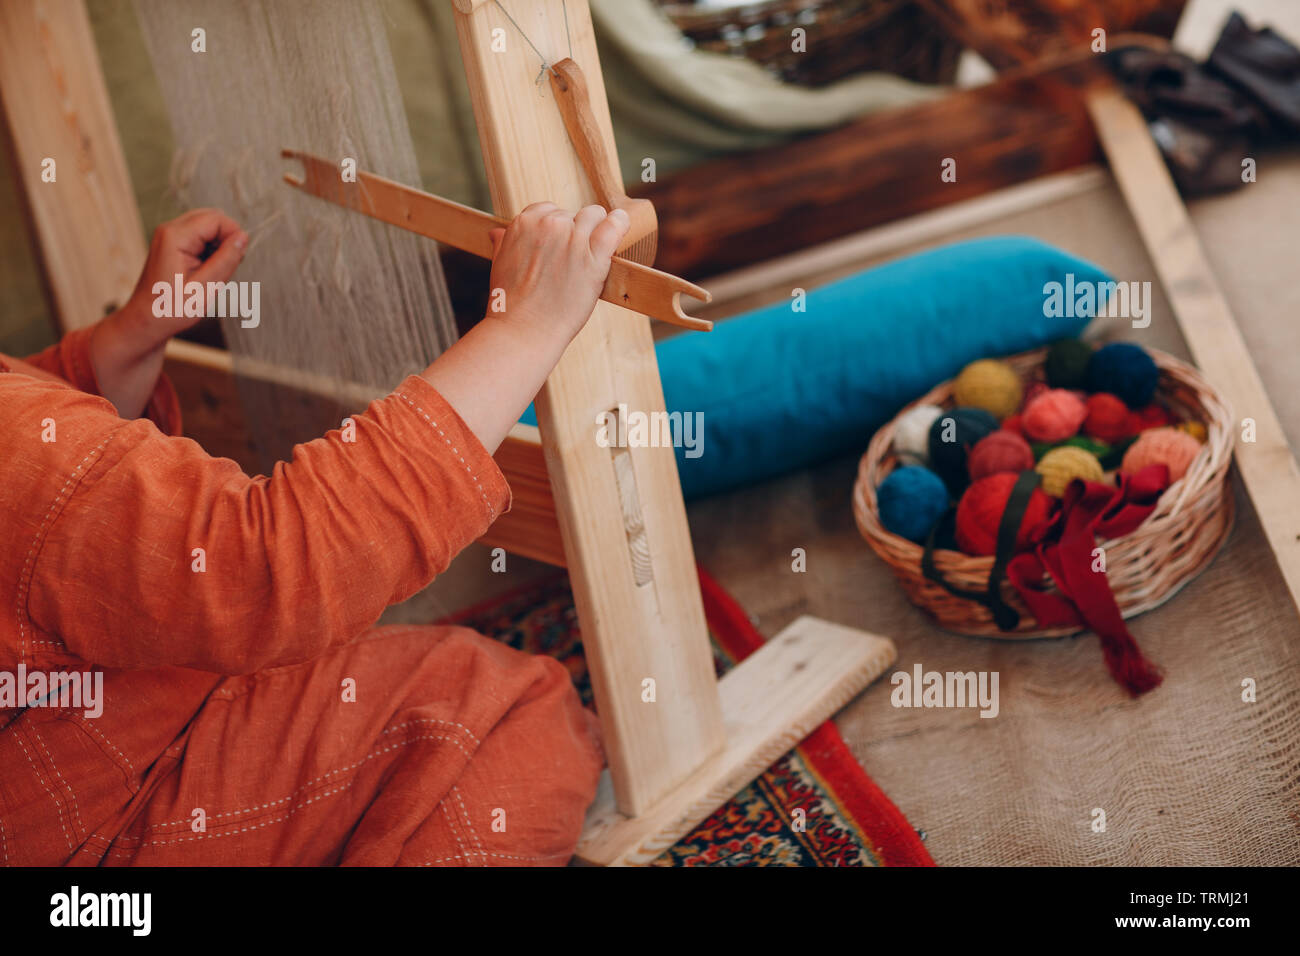 Woman makes thread, yarn and fabric - Stock Image